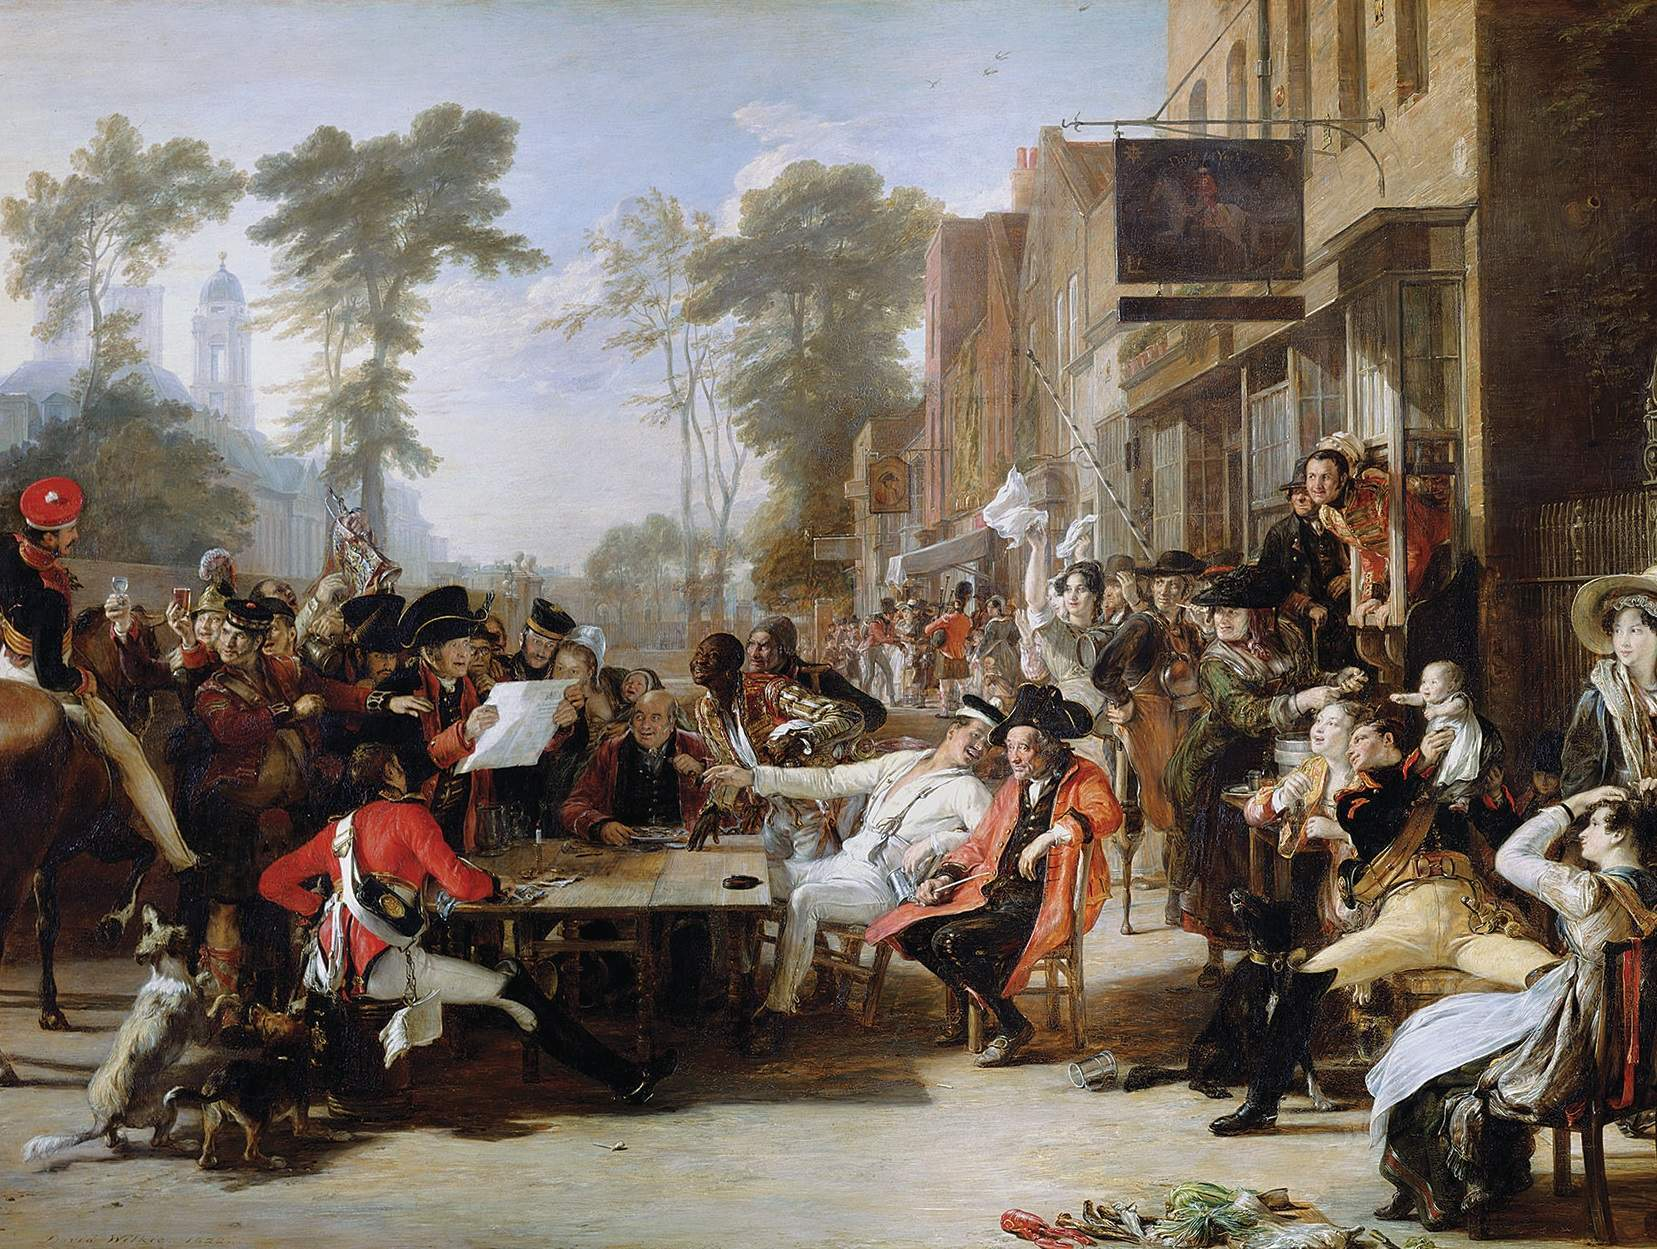 What the Battle of Waterloo teaches us about Europe today